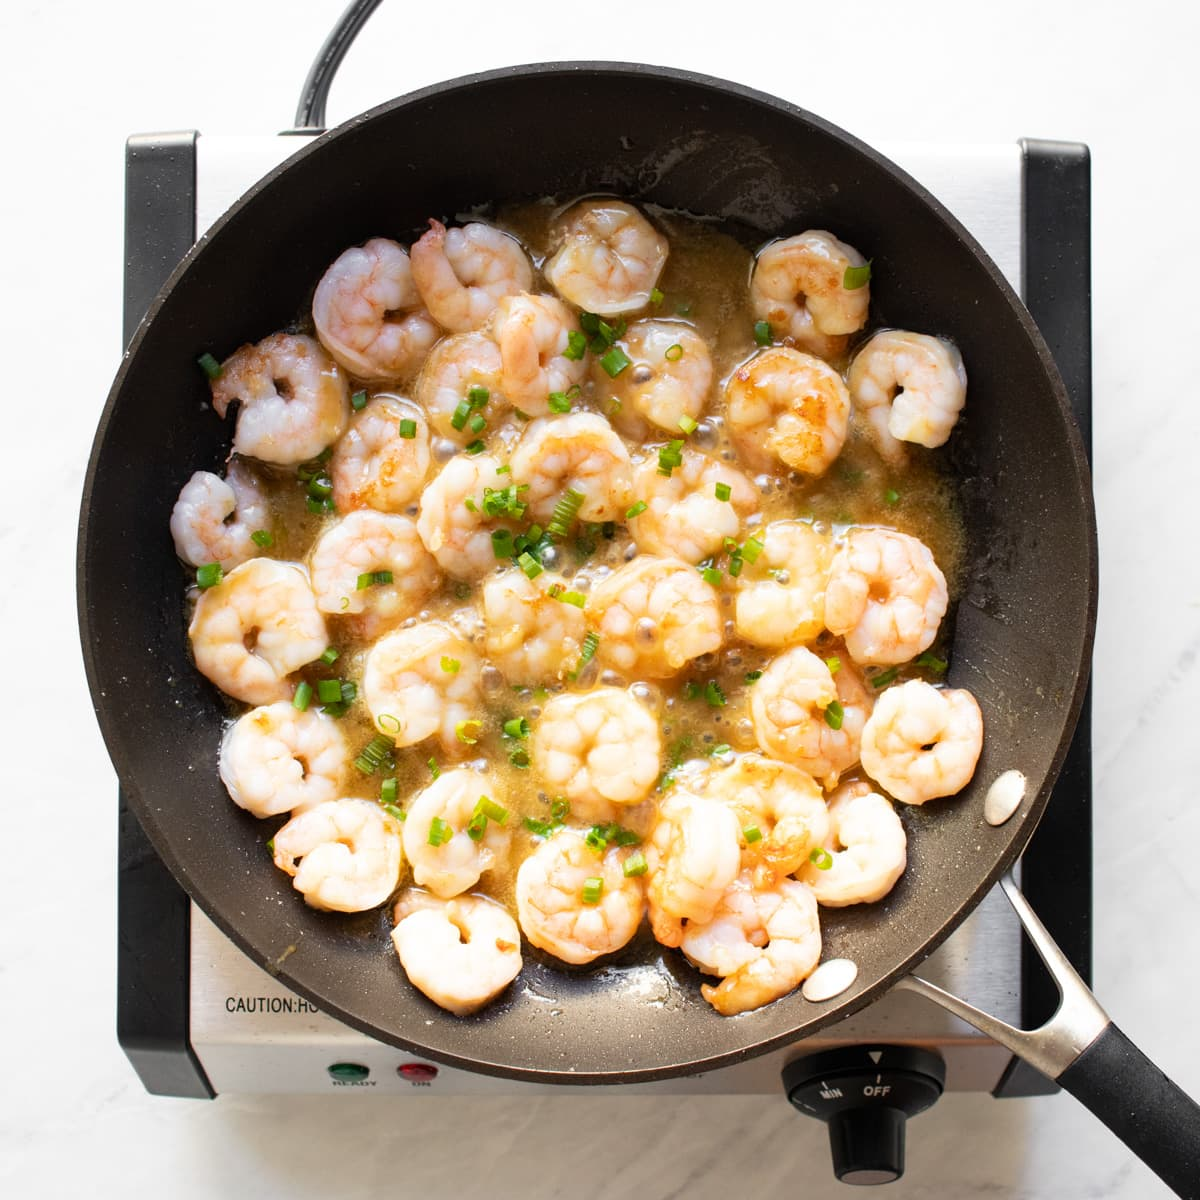 Cooked maple dijon shrimp topped with snipped chives.